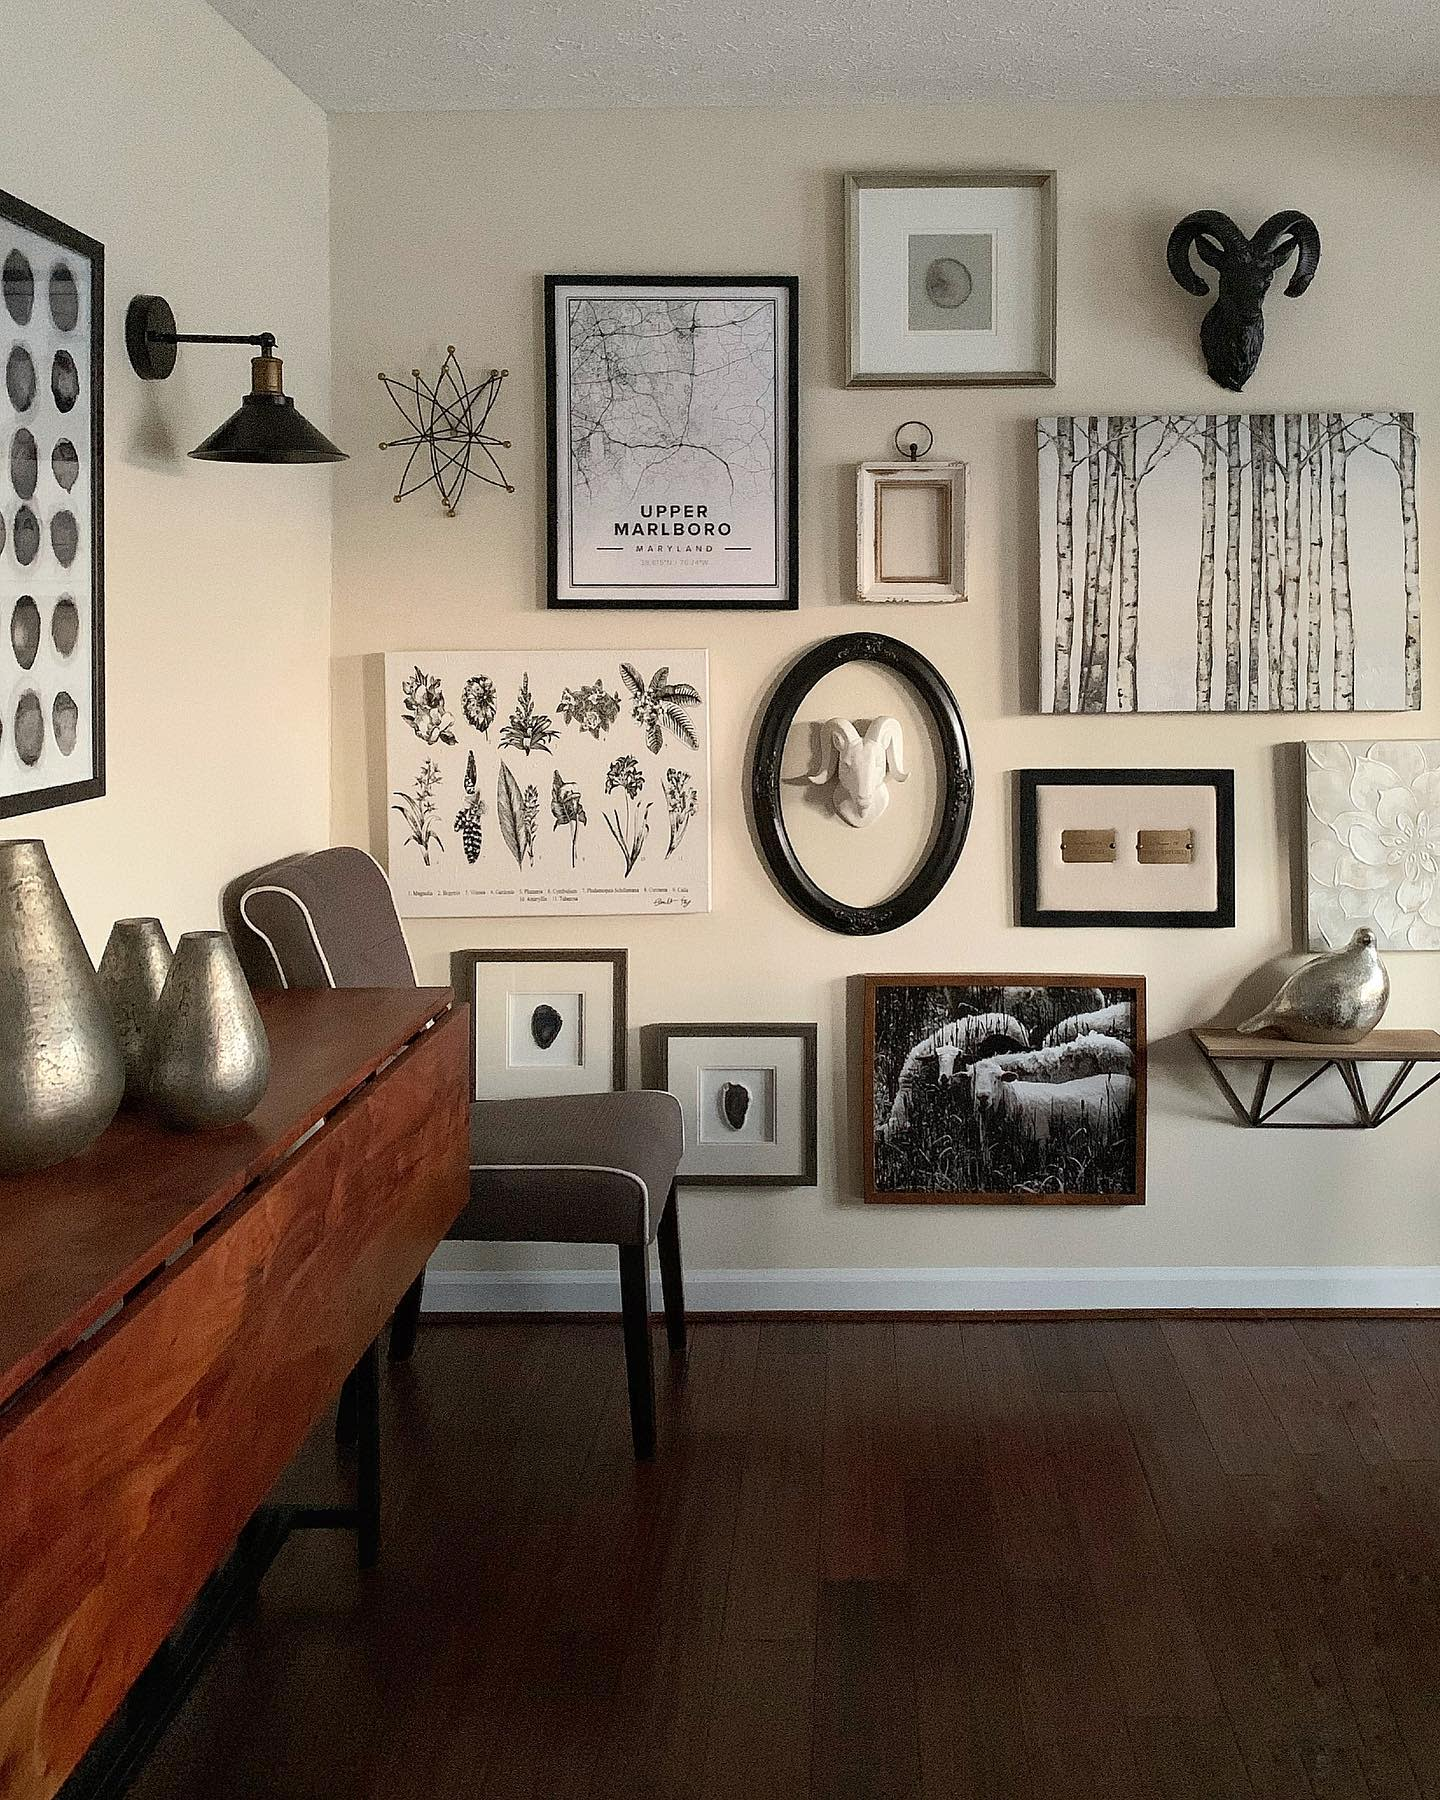 Decor Wall Collage Ideas 2 -itsmorethanahome